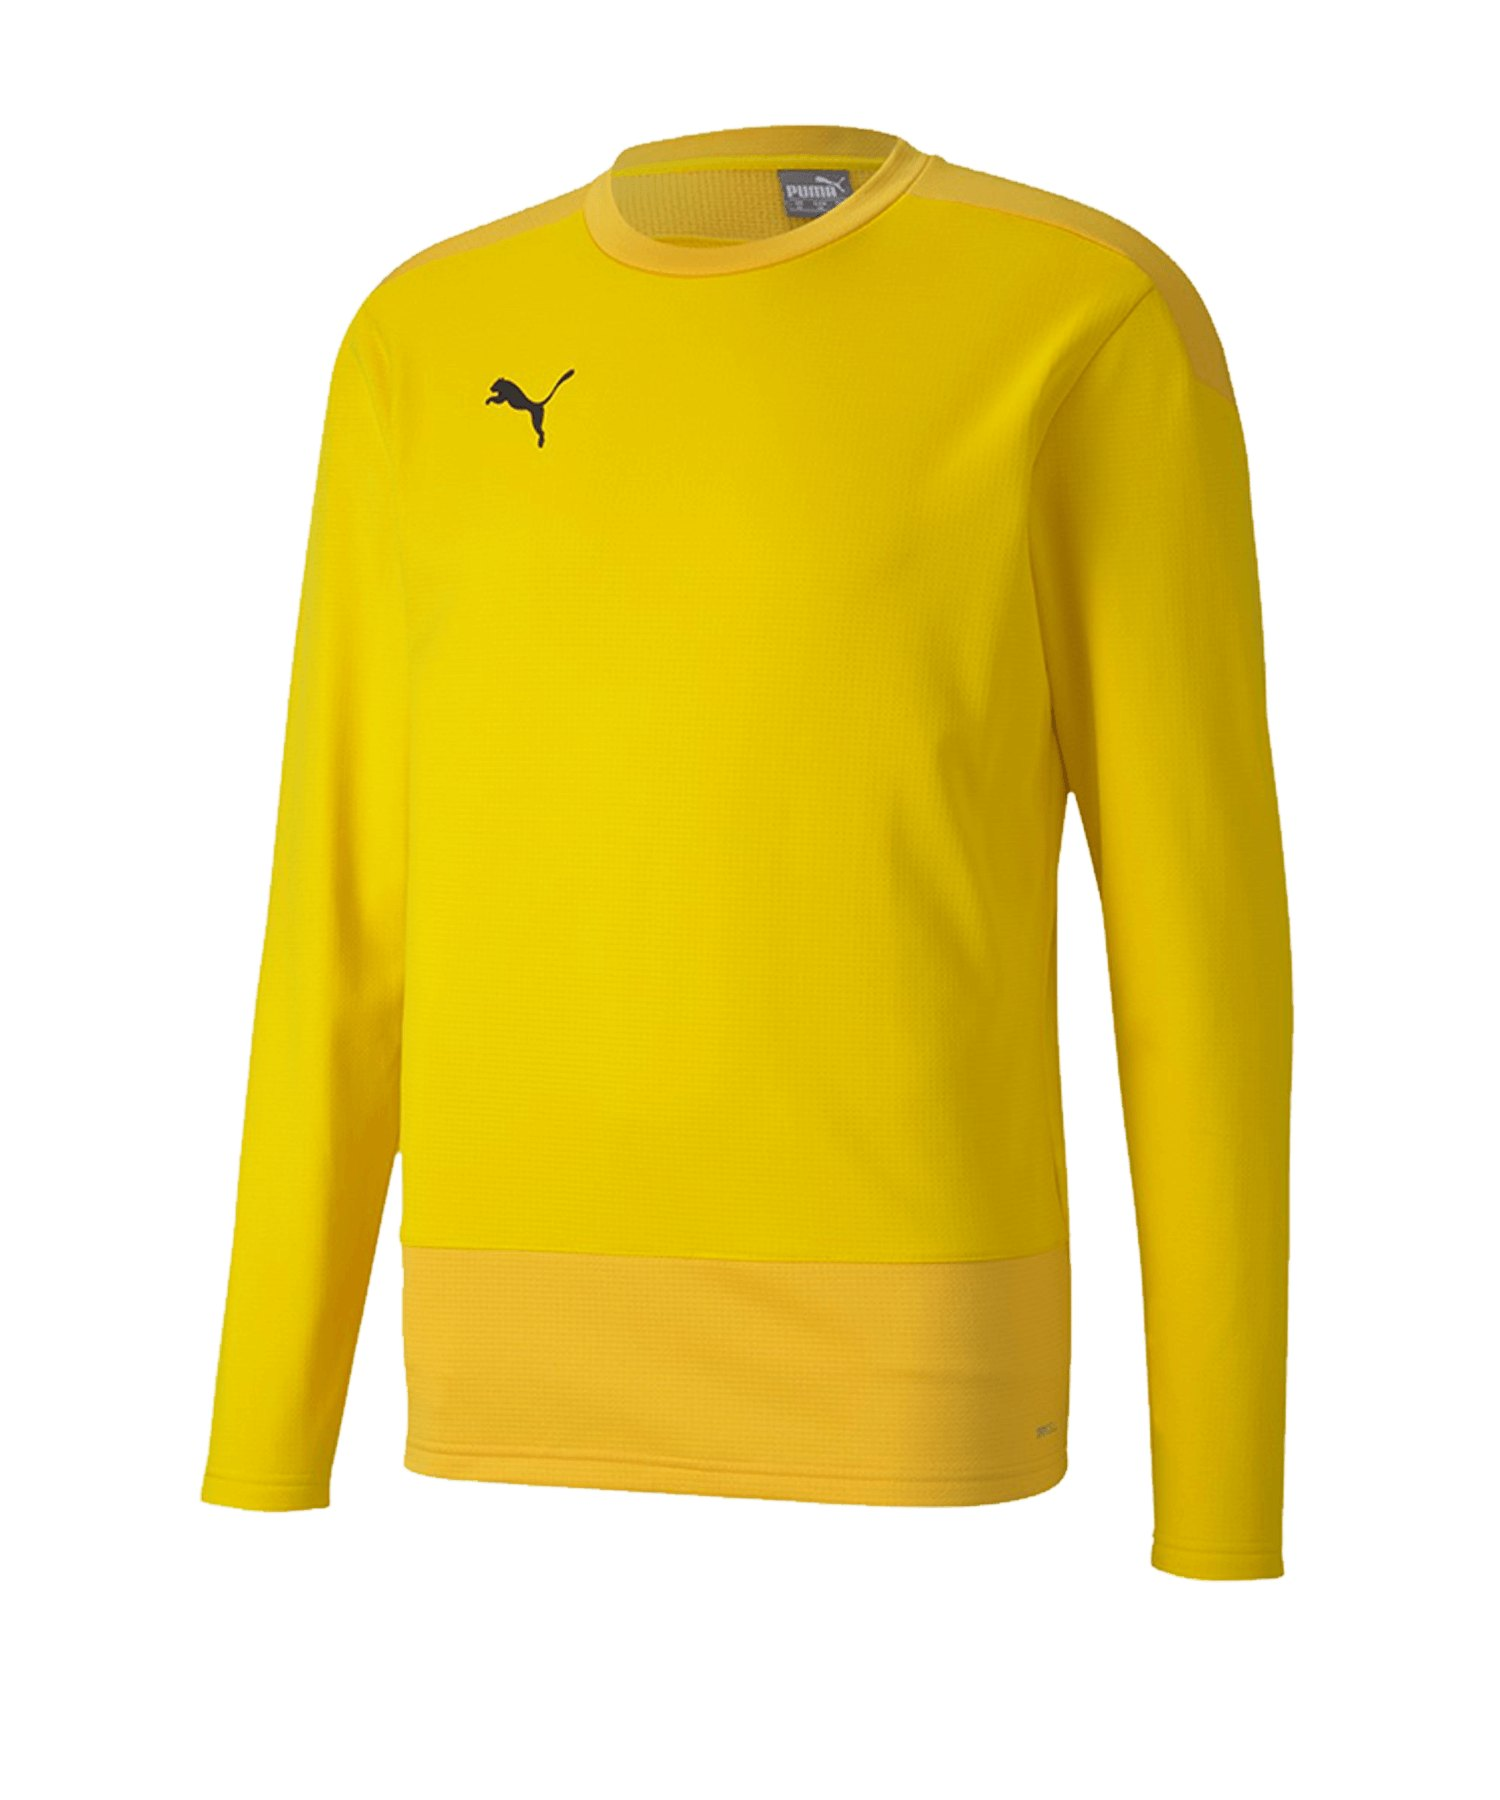 PUMA teamGOAL 23 Training Sweatshirt Kids Gelb F07 - gelb